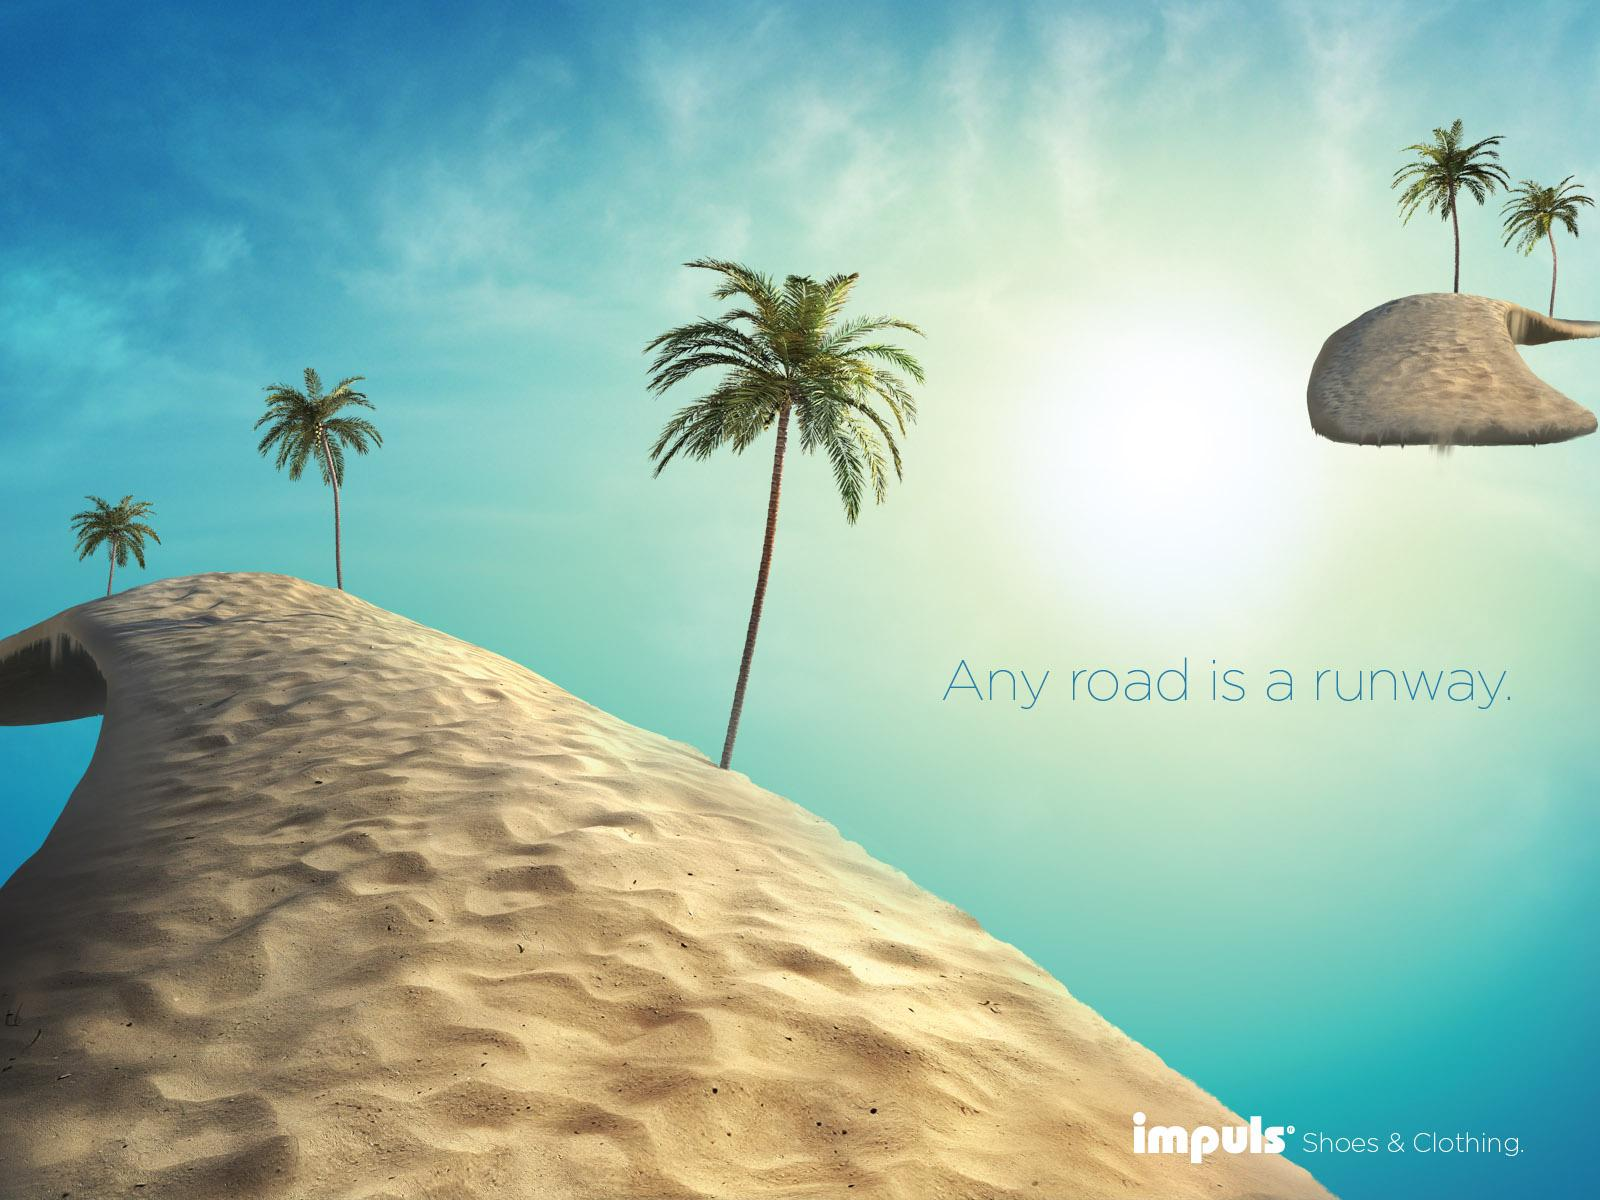 Impuls Print Ad -  Any Road is a Runway, Beach